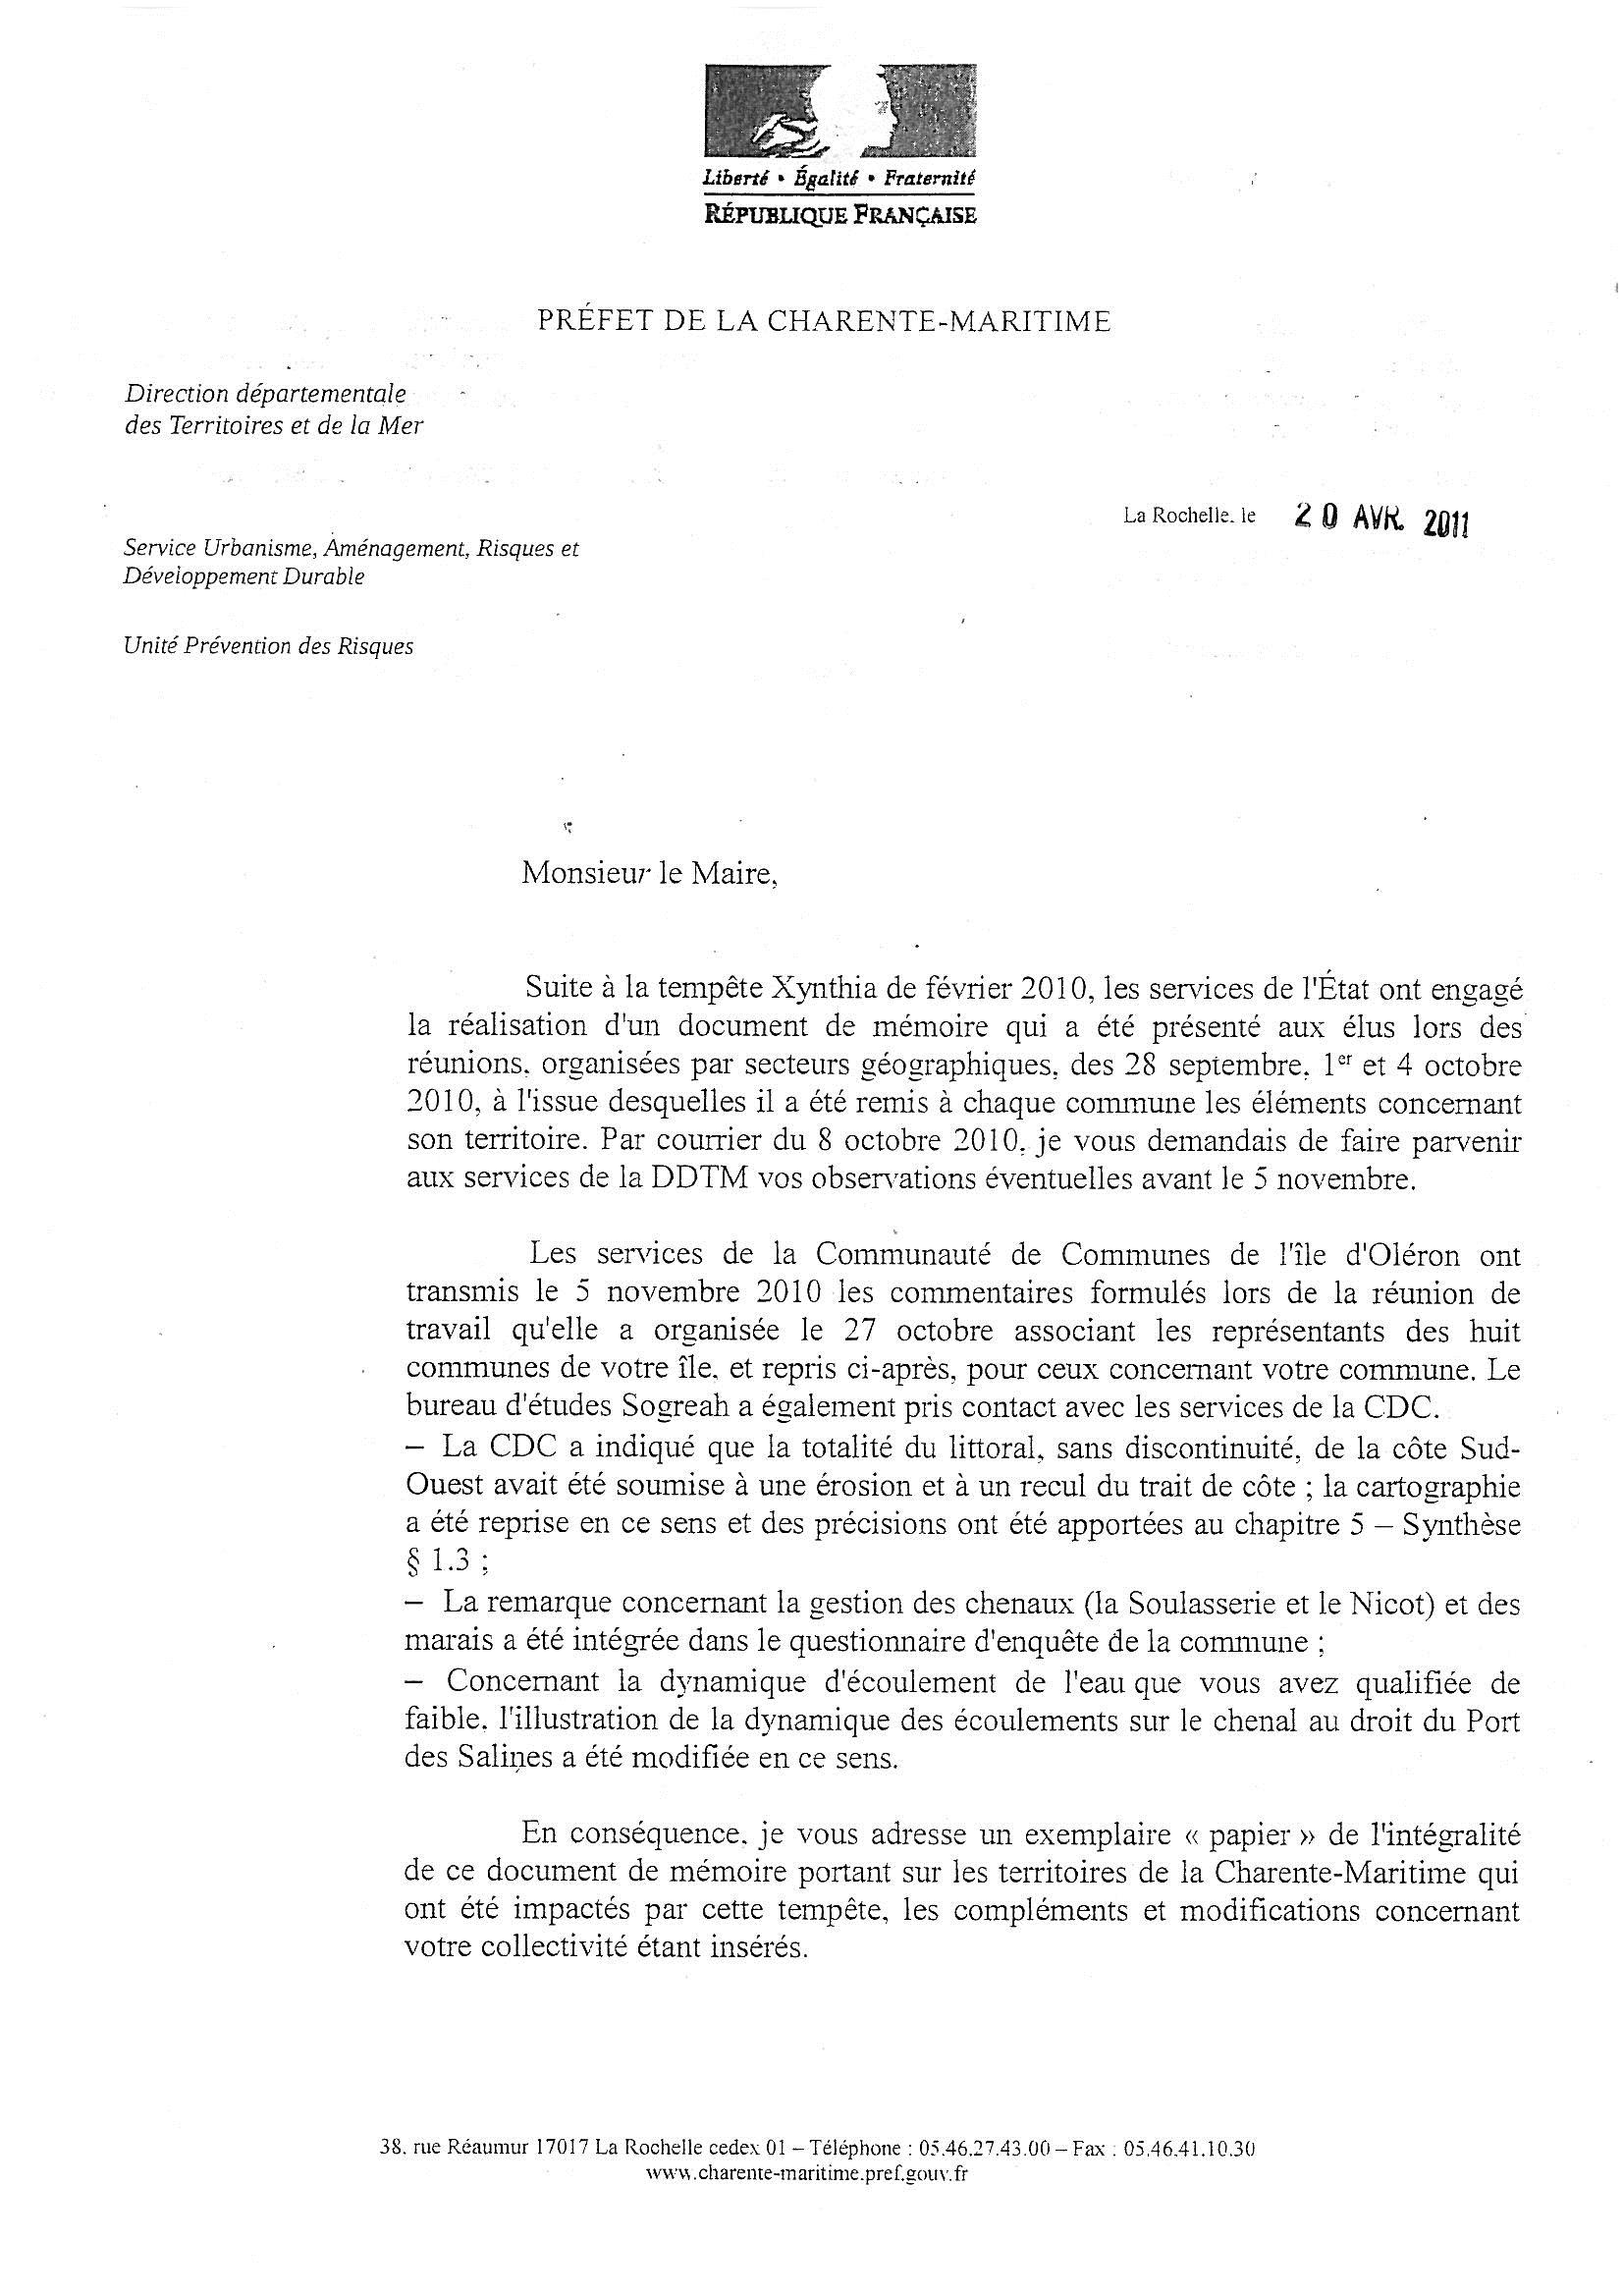 Document modifié par la